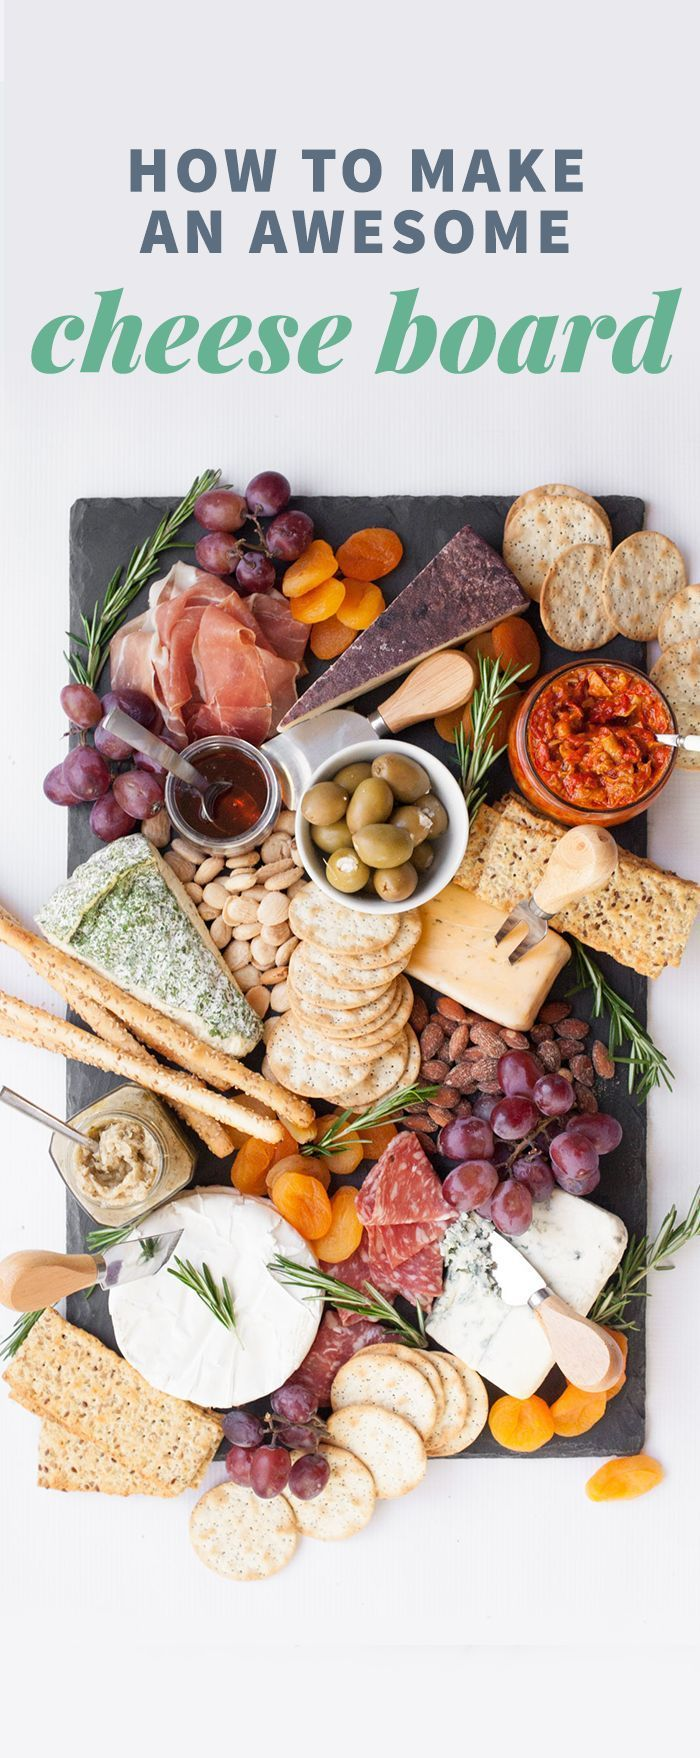 I love a good cheese board, but i'm still not sure if we should keep meats and cheeses separate or make them all together in a pretty mix / How to Make an Awesome Cheese Board in Minutes